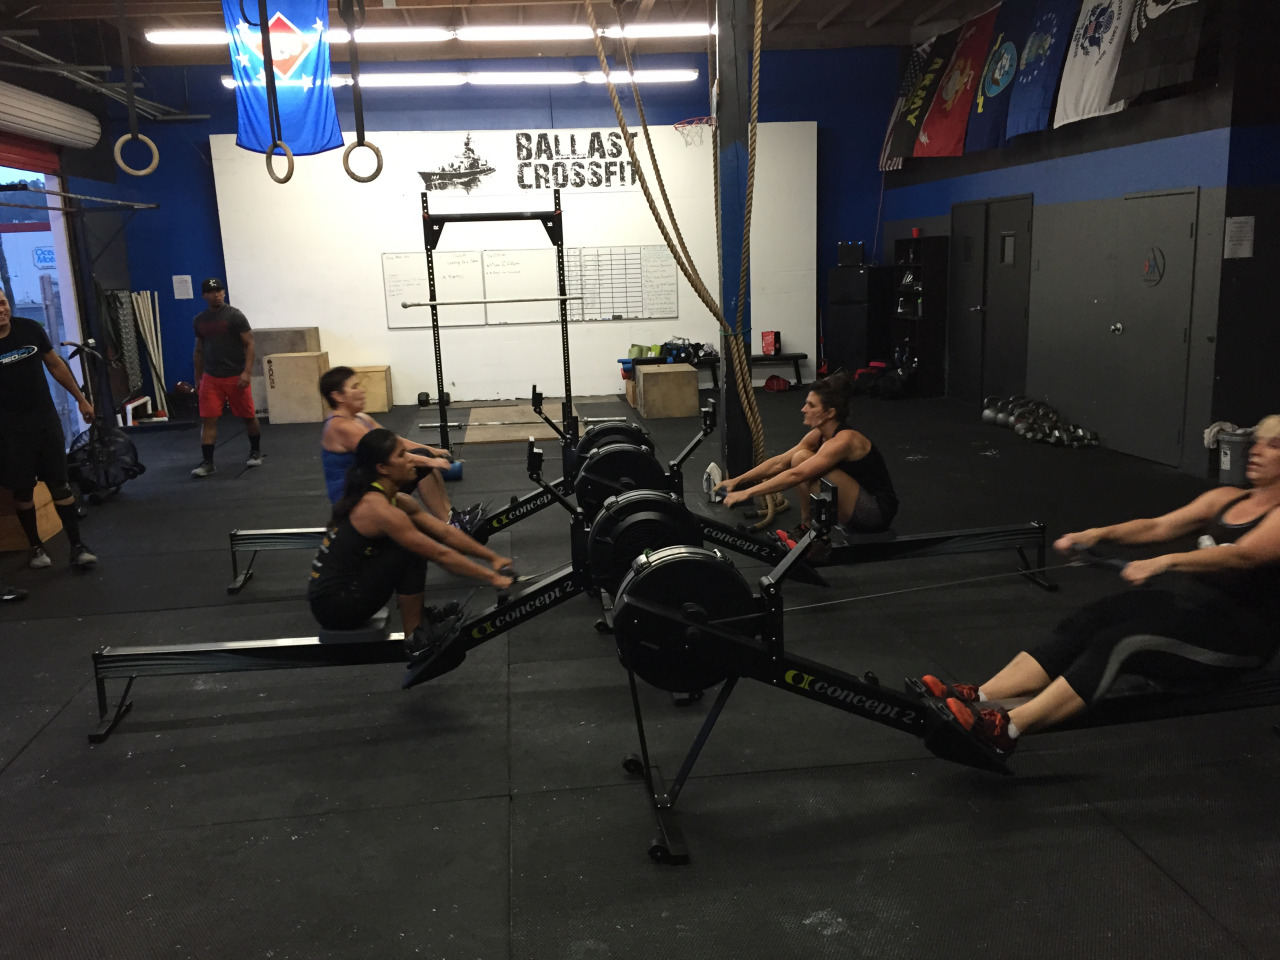 MONDAY 28DEC15    Monday    1. 2 RNFT:  250m row + 200m run + bear crawl + crab walk  2. 2 RNFT:  2 strict t2b + 3 kipping t2b   5 ring row w/ 3'' pause @ top of each rep  30'' russian baby maker stretch   HS walk/HS hold practice  3. 20' to find heavy 2 front squat + 1 split jerk   3a. seated single arm press w/ 3'' descent 5-5-5-5  3b. seated good morning 5-5-5-5  4. 8' amrap:  5/3 c2b pull up  10 thruster 95/65  10/7 c2b pull up  10 thruster  15/10 c2b pull up  10 thruster  20/15 c2b pull up  10 thruster  25/20 c2b pull up  10 thruster  30/25 c2b pull up  10 thruster  AMAP c2b pull ups w/ remaining time